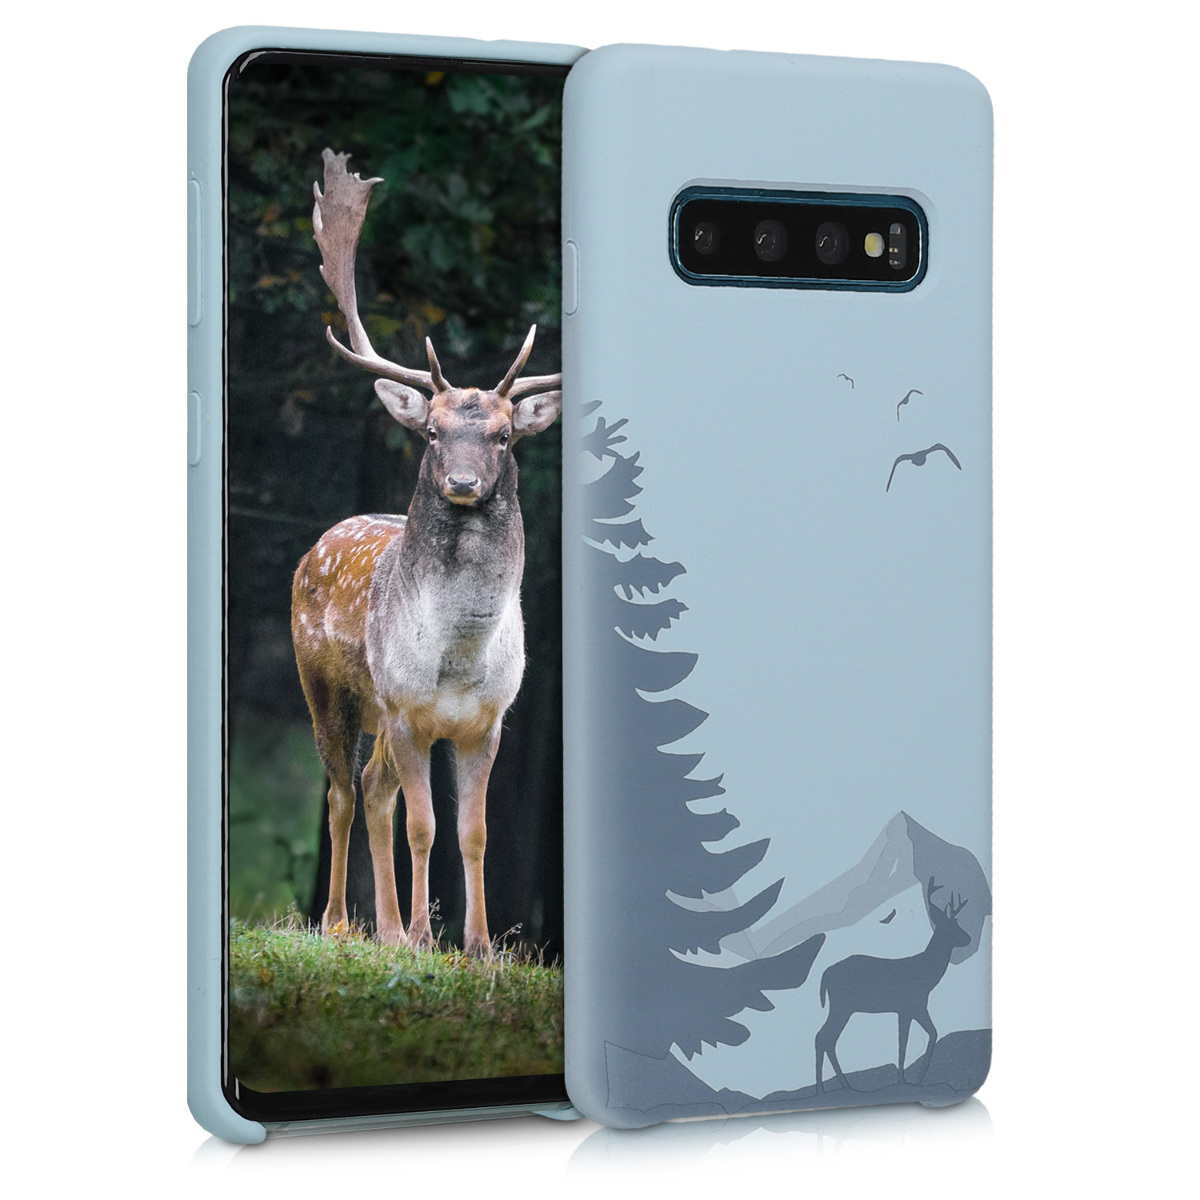 KW Θήκη Σιλικόνης Samsung Galaxy S10 - Engraved Deer - Light Blue (51127.01)